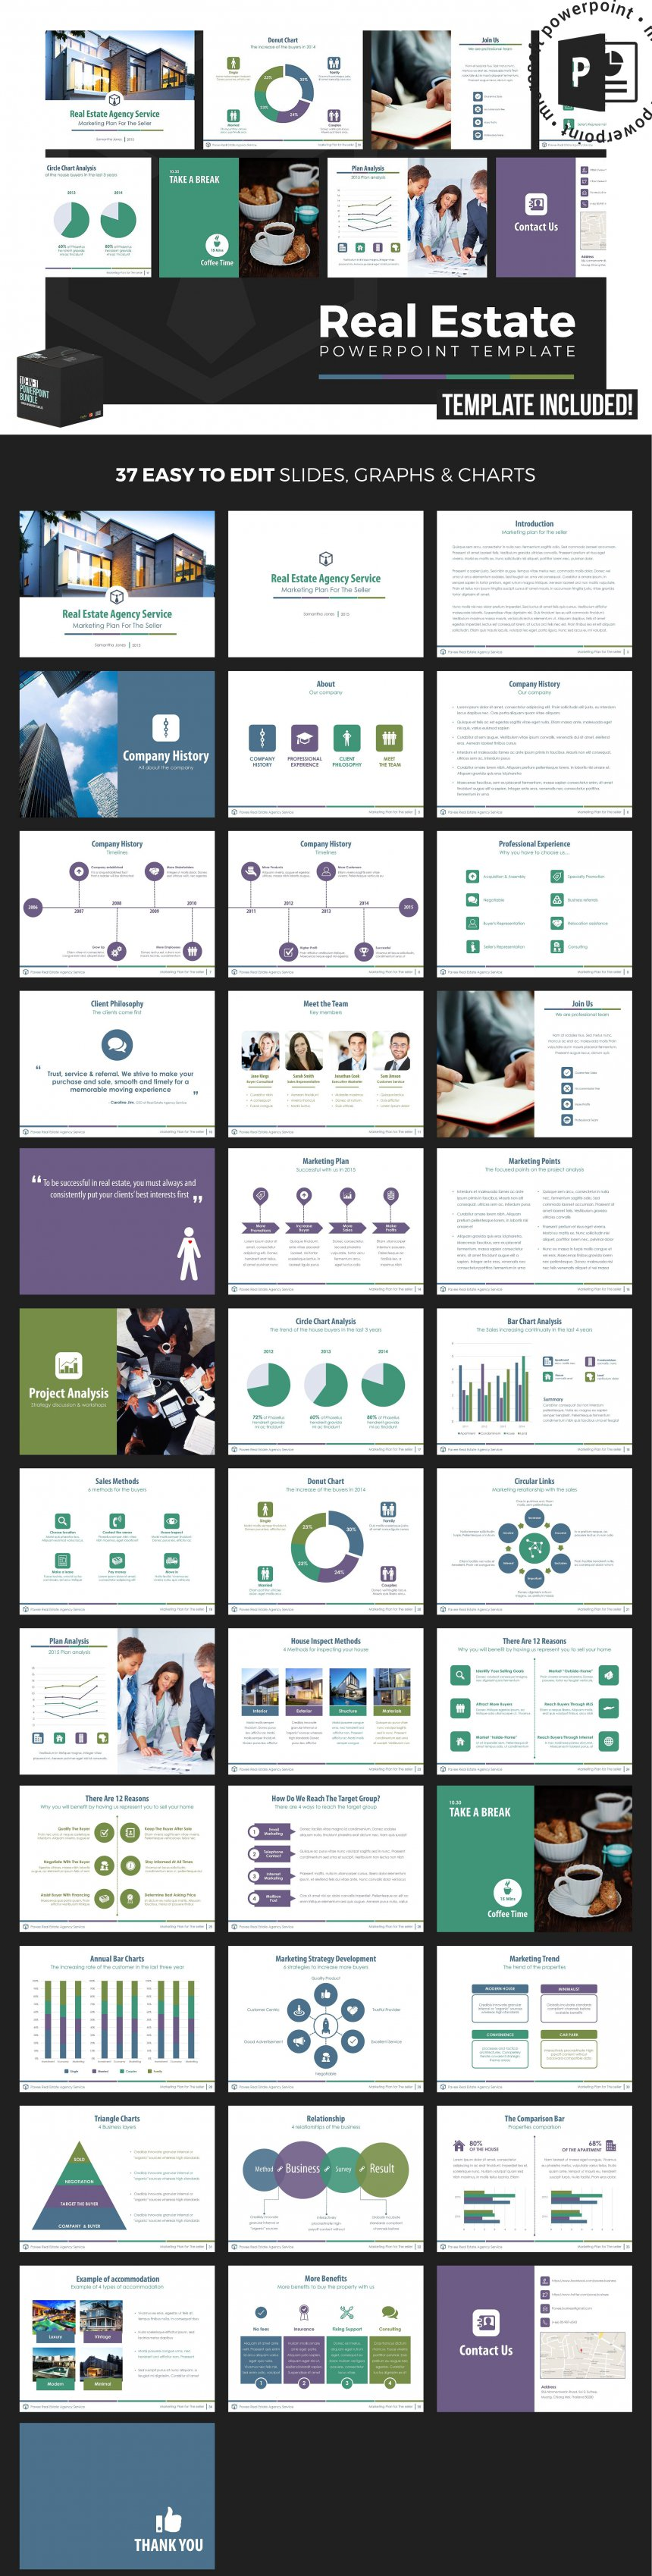 10 creative and professional powerpoint templates plus bonuses real estate powerpoint template toneelgroepblik Gallery